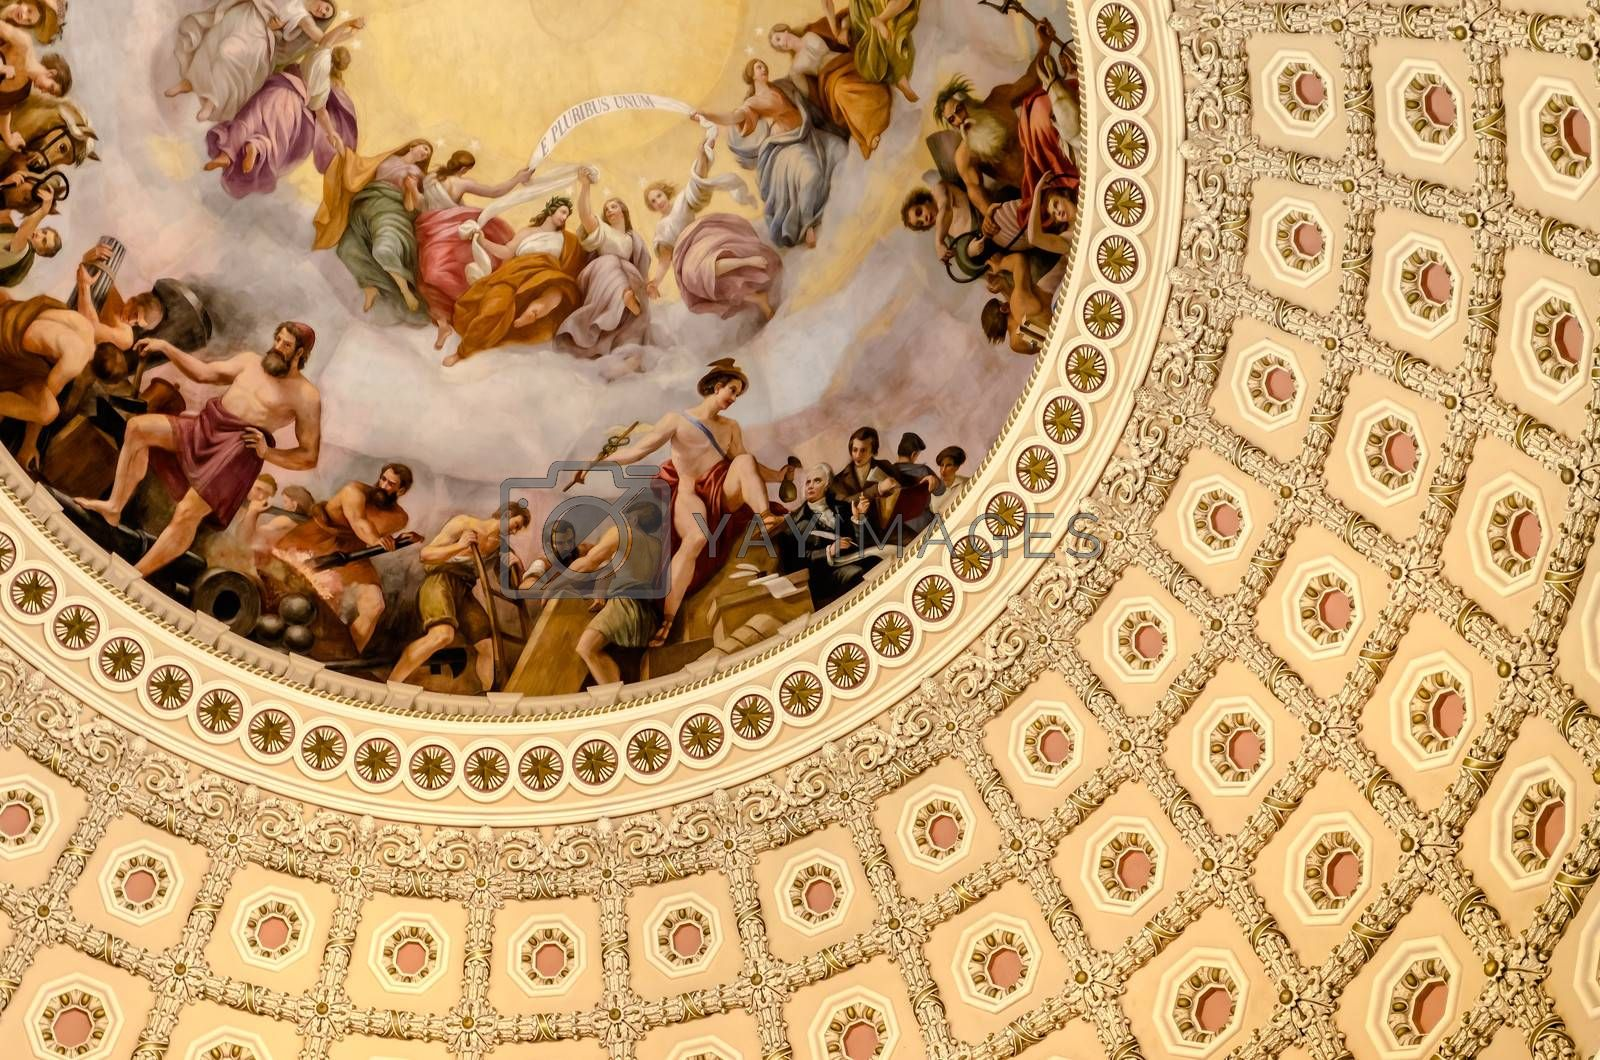 US Capitol Rotunda, detail of the interior decoration